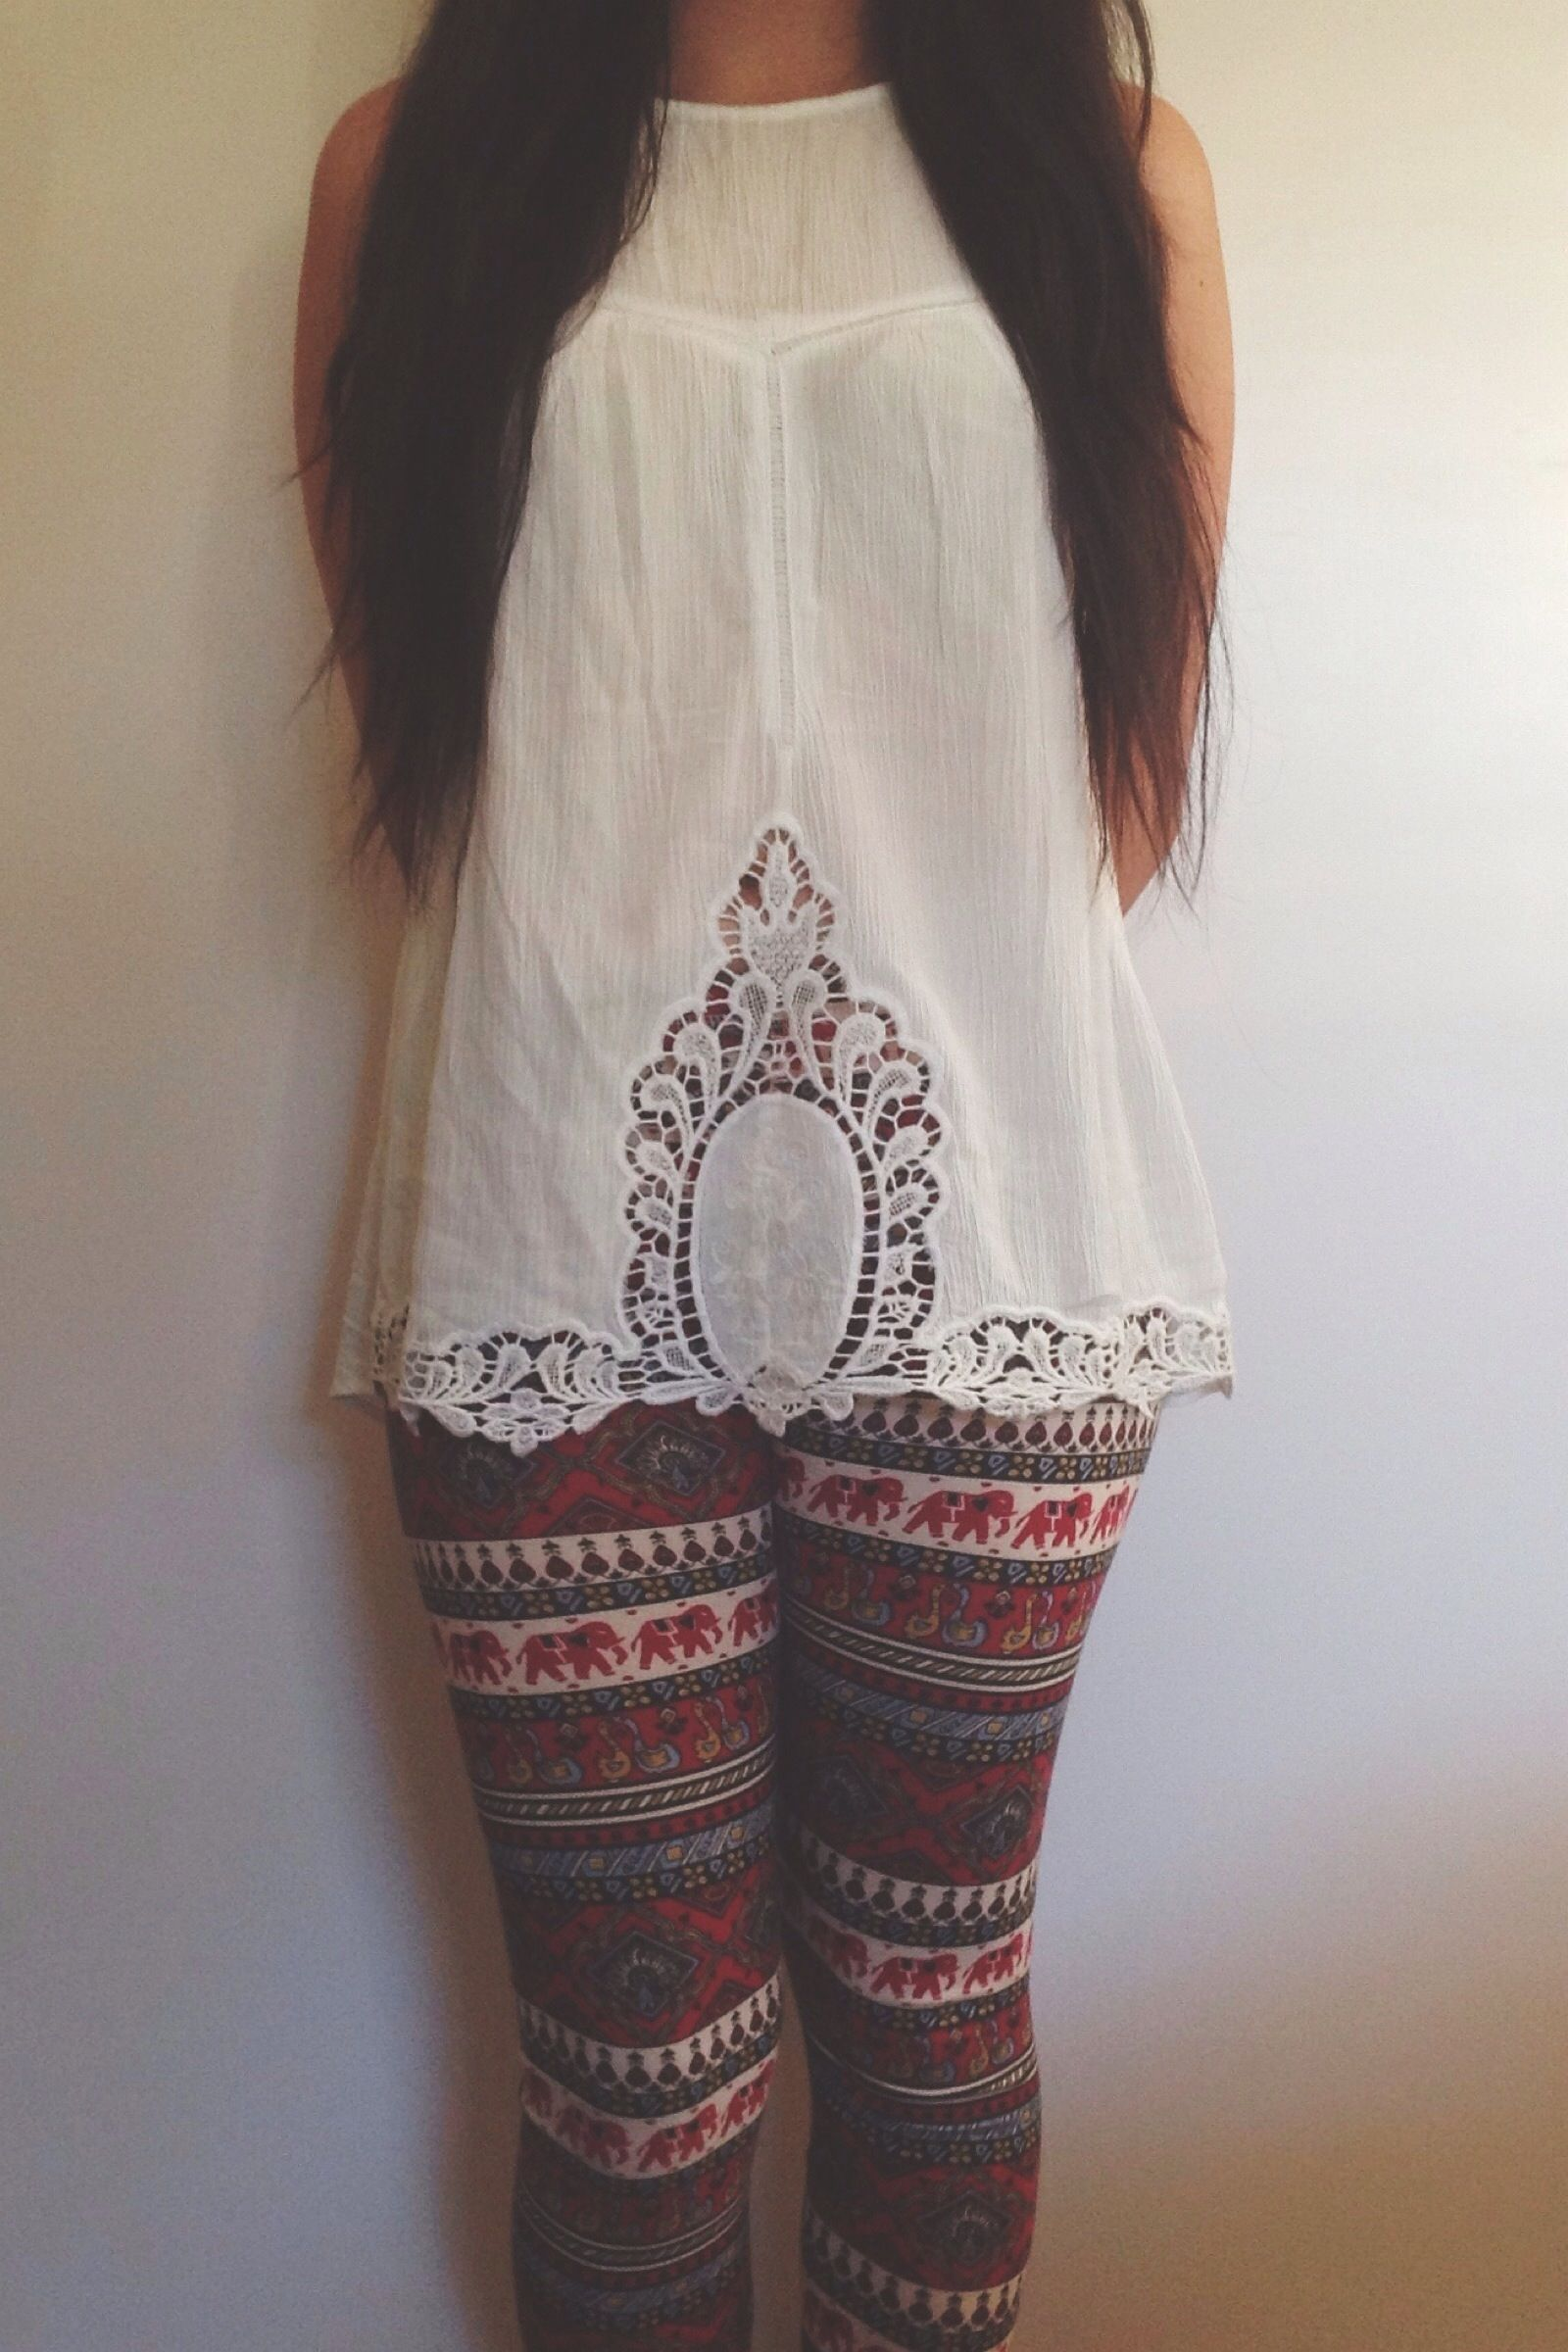 Urban outfitters lace shirt. Urban leggings, elephant designs, crazy detail. Ootd outfitoftheday fashion